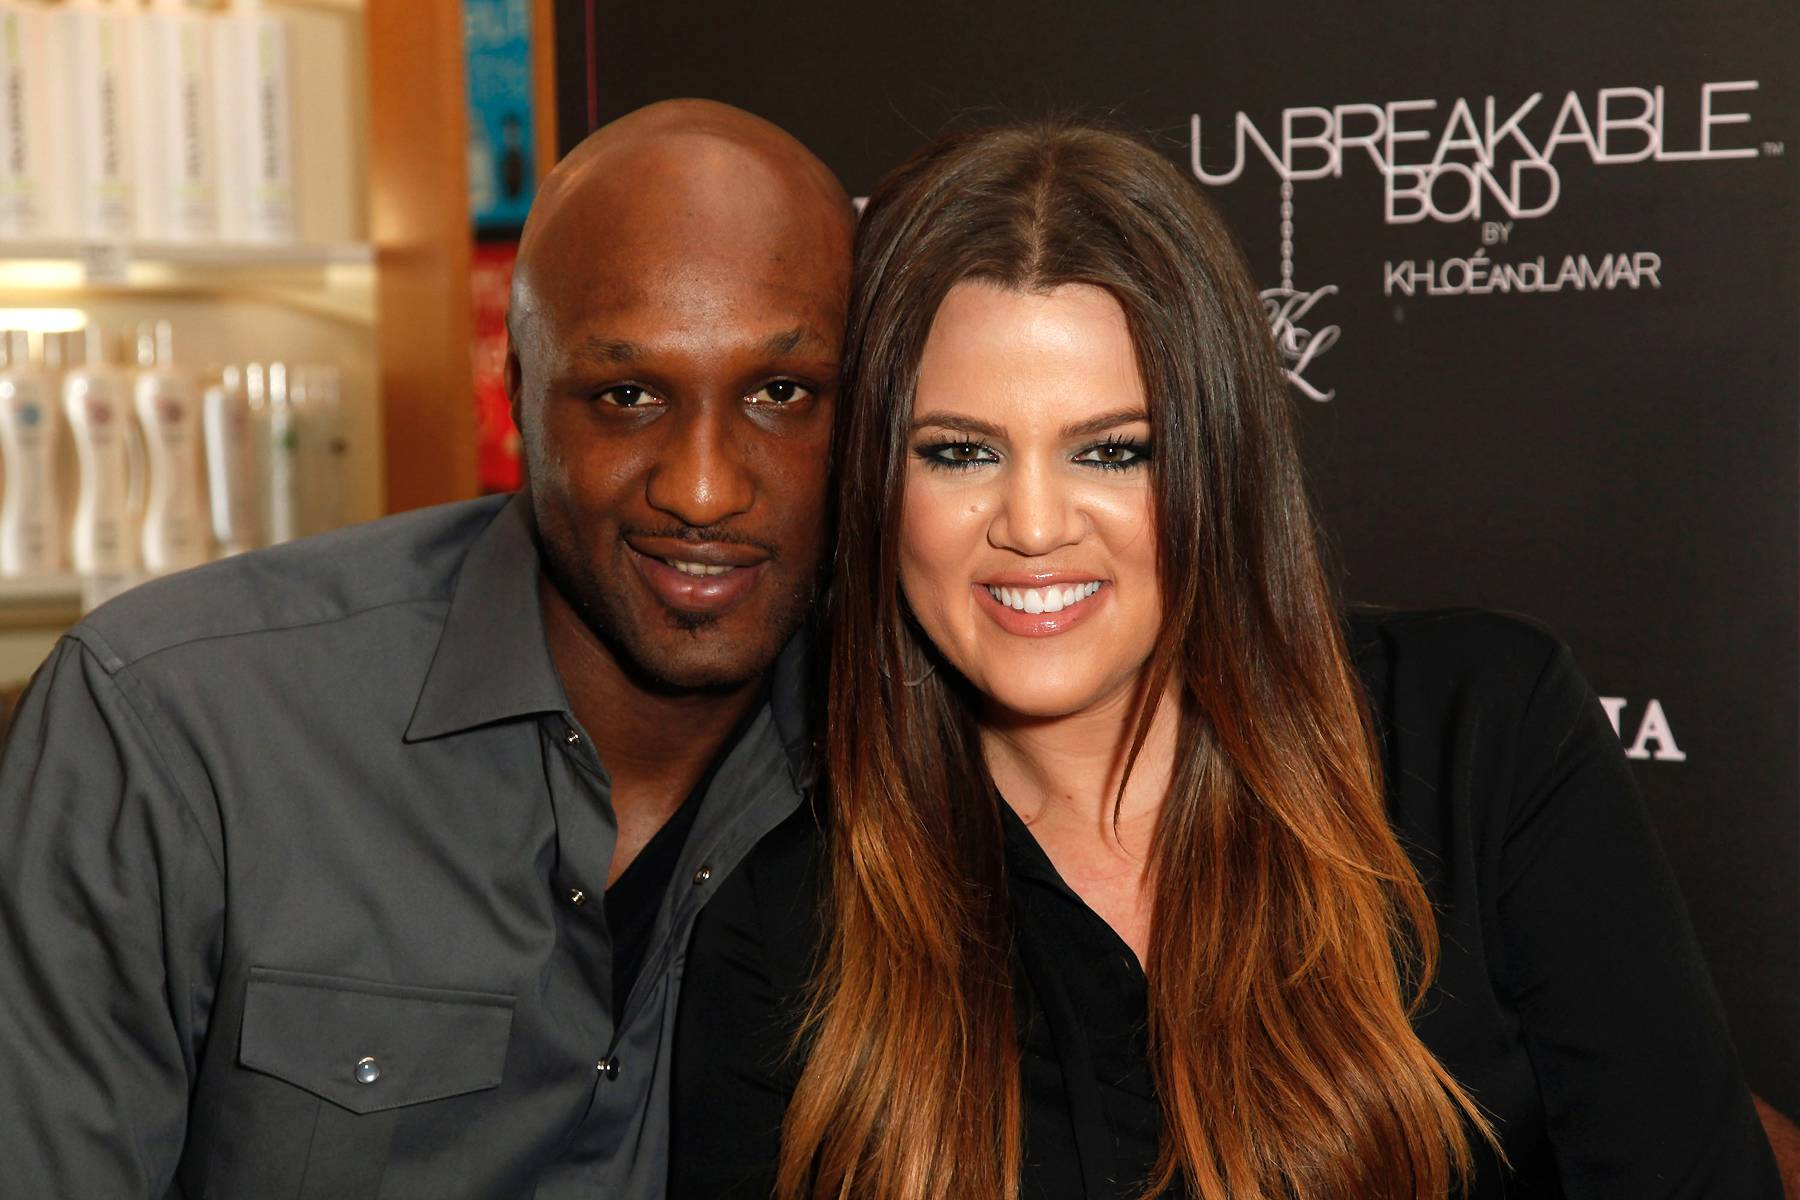 """""""She?s Still My Wife"""" - Odom spoke out for the first time on Feb. 21 about Kardashian filing for divorce: """"I love my wife. She'll always be my wife, no matter what,"""" Odom told US Weekly. """"Who knows? We don't know exactly if [the divorce is going through]. Only time will tell. I hope not. But even if we were divorced, she would always be my wife.""""(Photo: Imeh Akpanudosen/Getty Images)"""